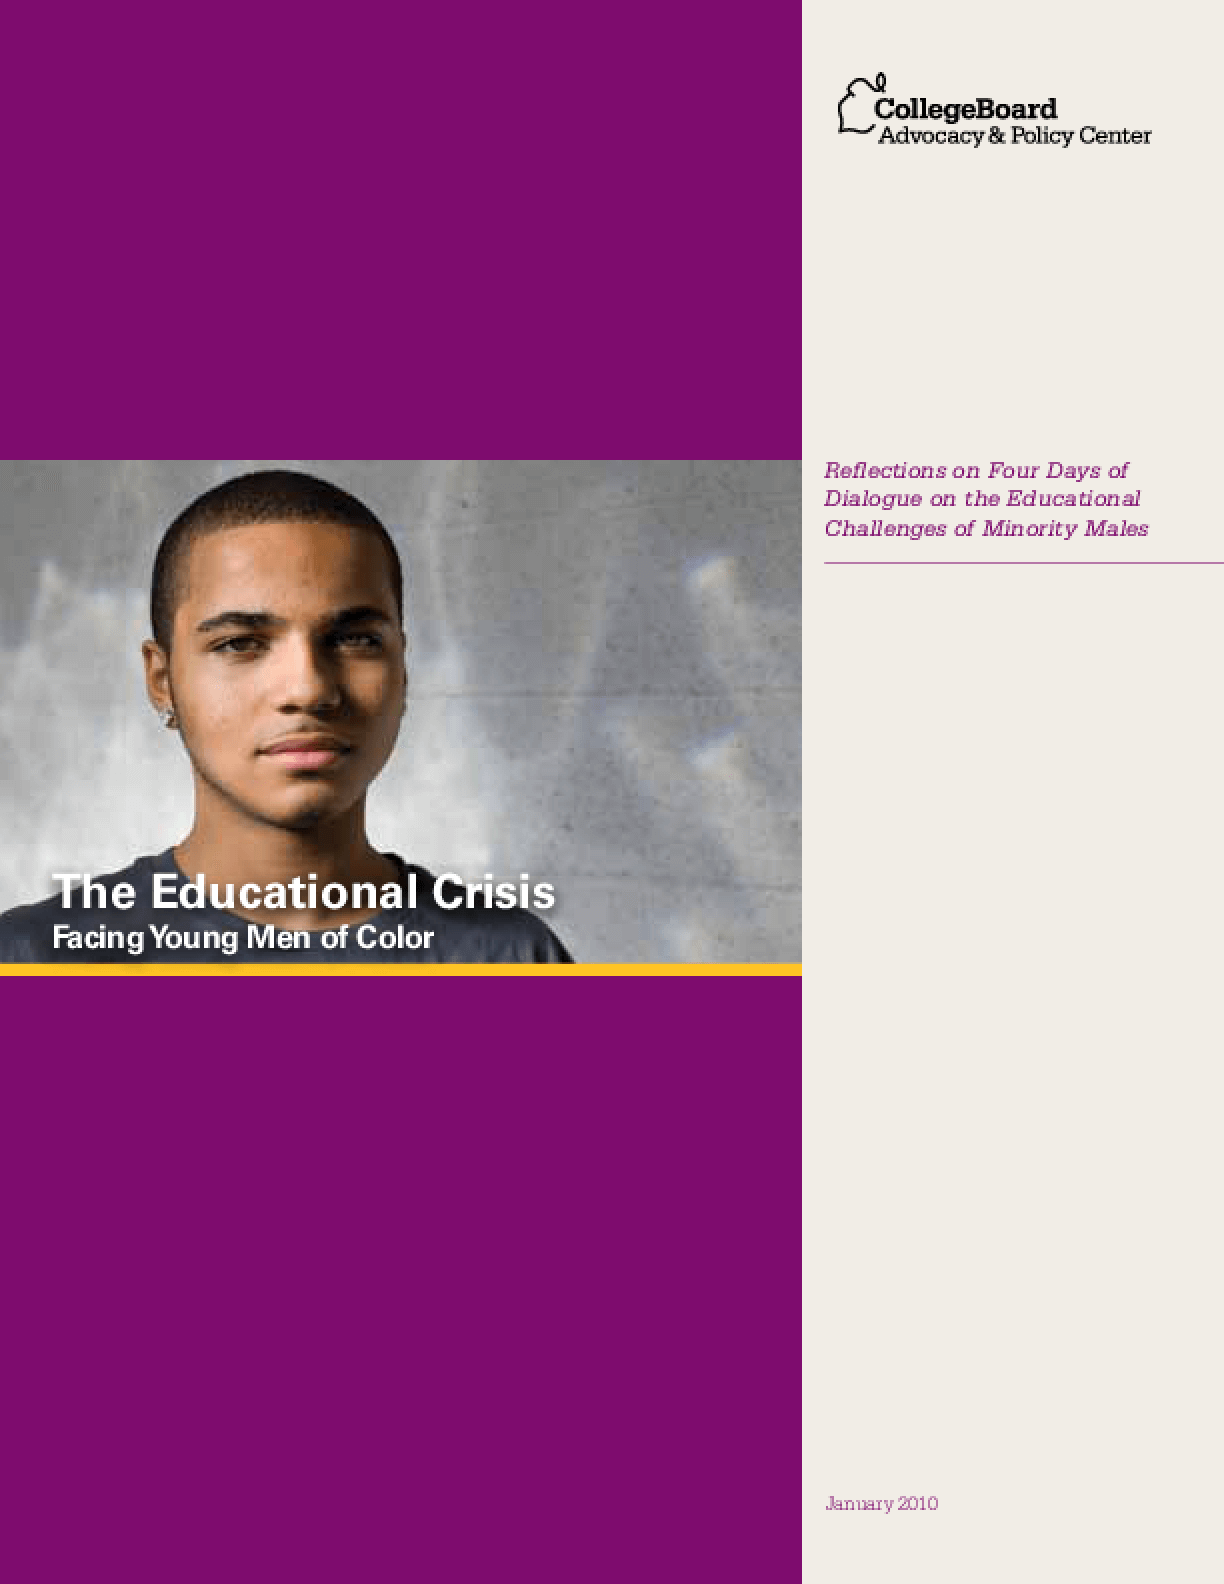 The Educational Crisis Facing Young Men of Color: Reflections on Four Days of Dialogue on the Educational Challenges of Minority Males